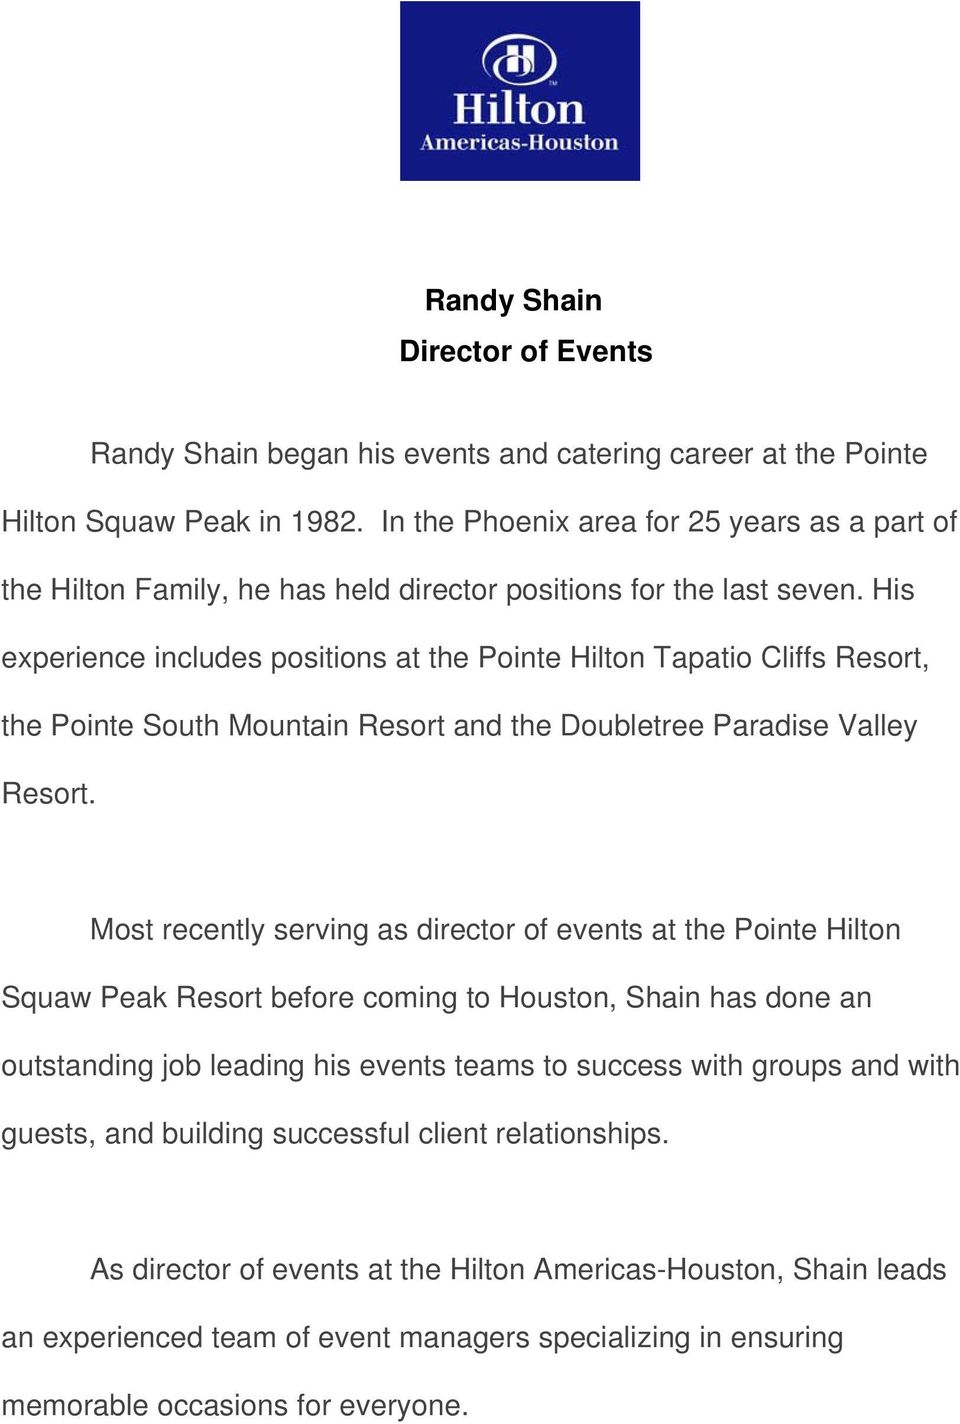 His experience includes positions at the Pointe Hilton Tapatio Cliffs Resort, the Pointe South Mountain Resort and the Doubletree Paradise Valley Resort.